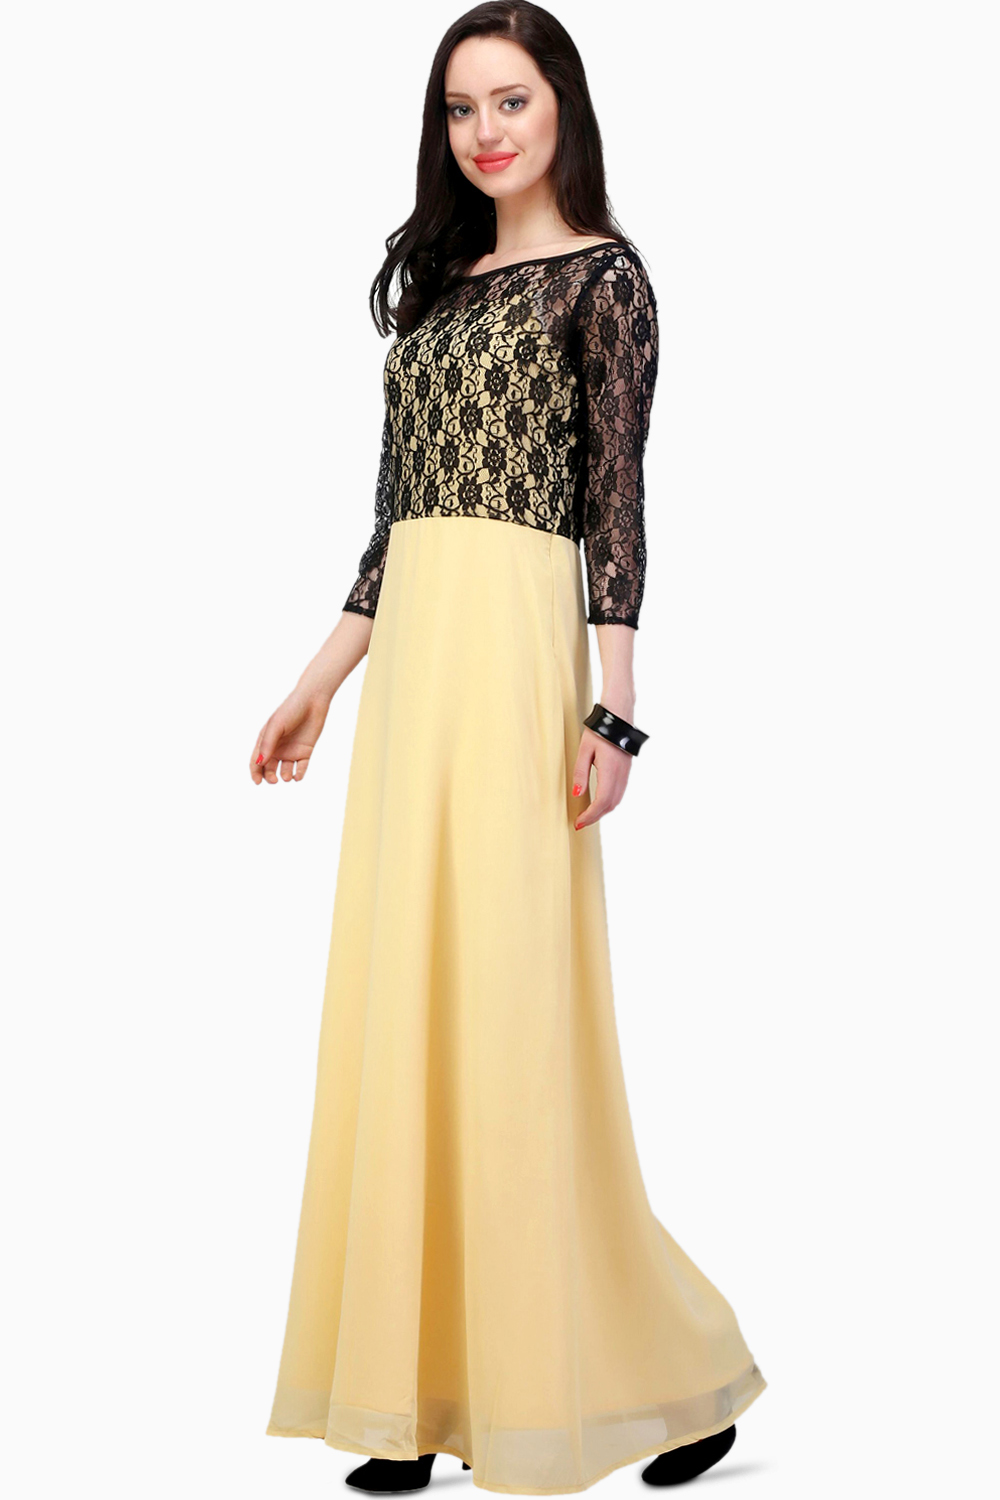 d98ce3101ca2 Jha Fashion Light Yellow And Black Lace Maxi Dress - Buy Jha Fashion ...